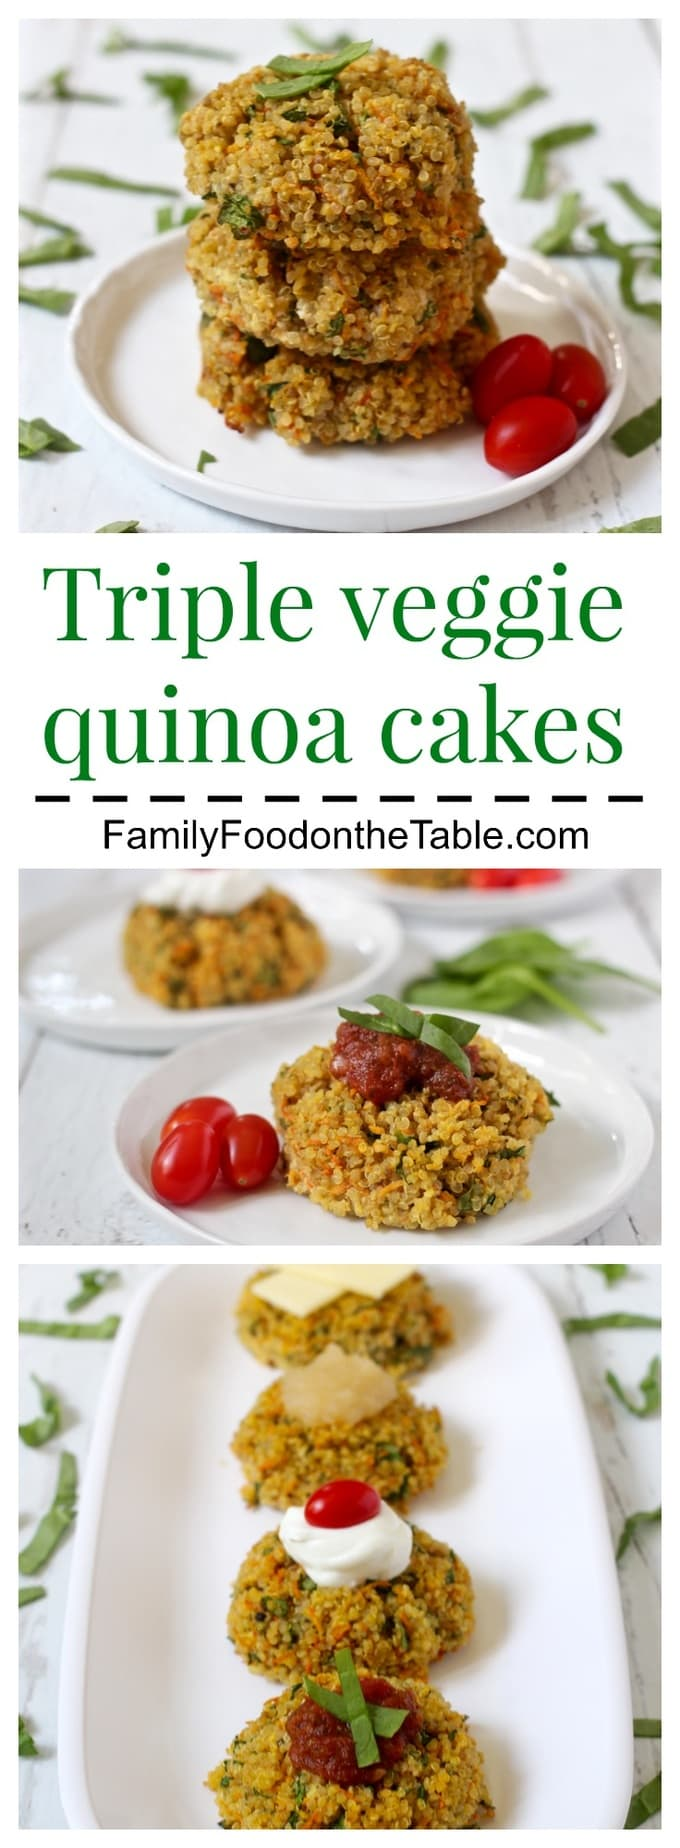 These triple veggie quinoa cakes are amazingly versatile and delicious any time of day! | FamilyFoodontheTable.com